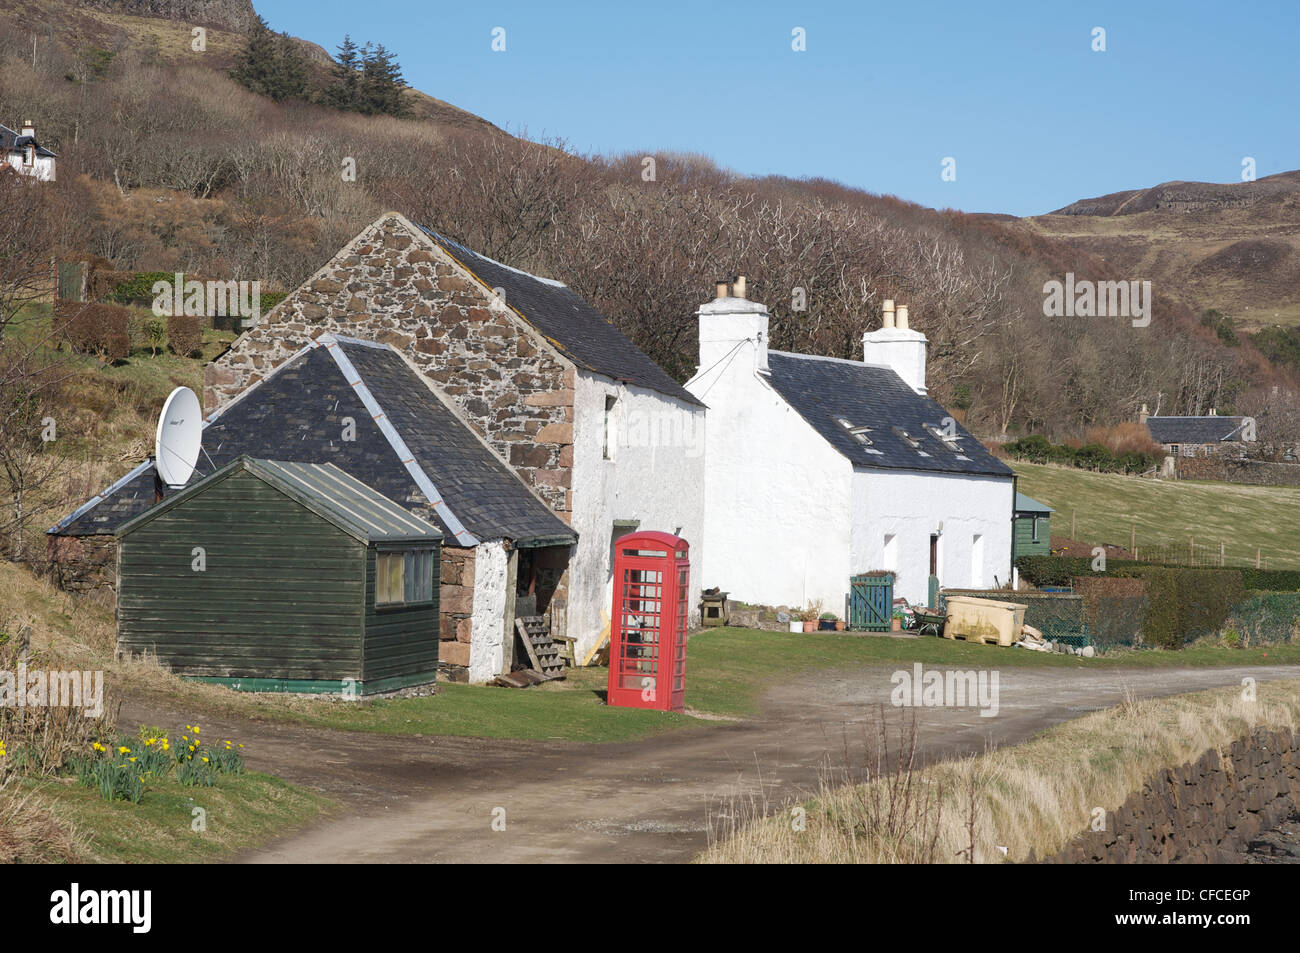 The Post Office, green hut in the foreground, and a red phone box on the Isle of Canna. Inner Hebrides, Scotland. - Stock Image